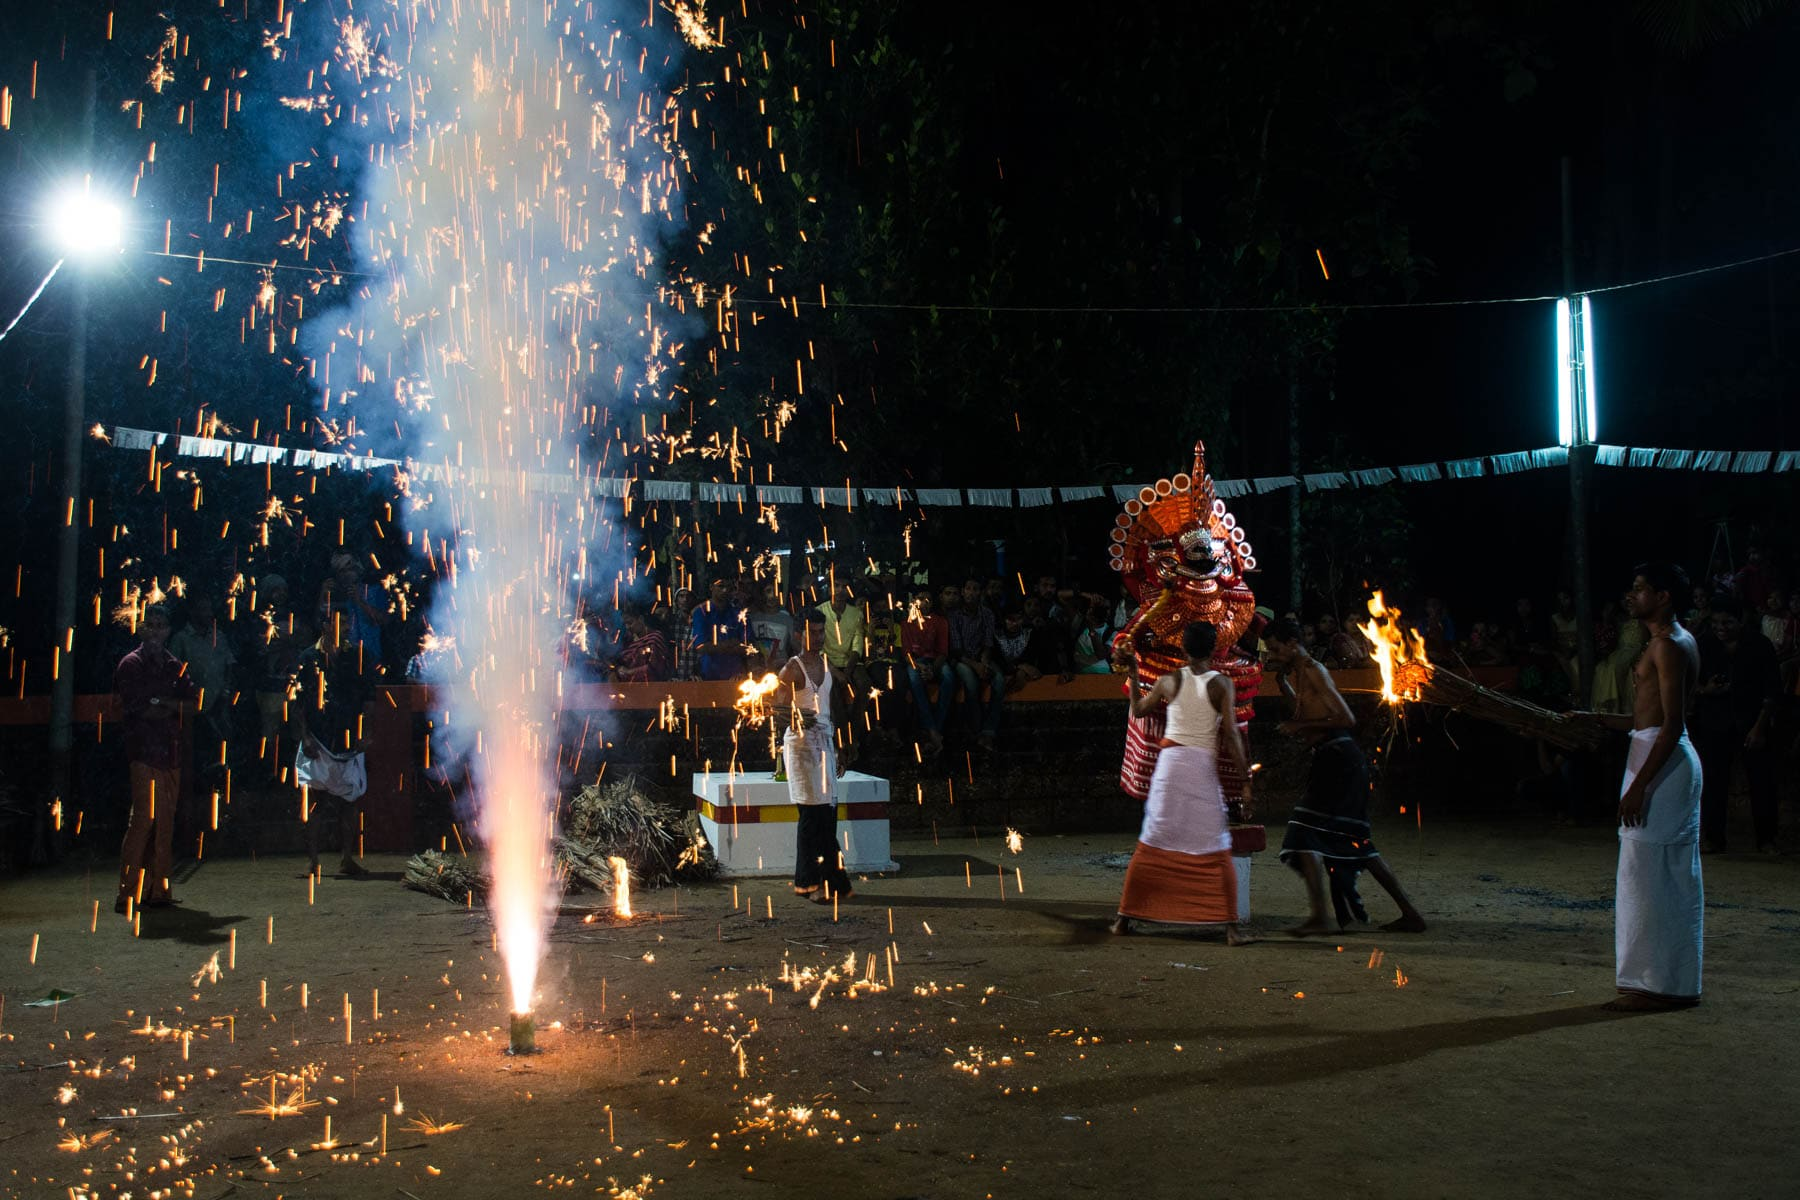 Fireworks going off during a Theyyam performance